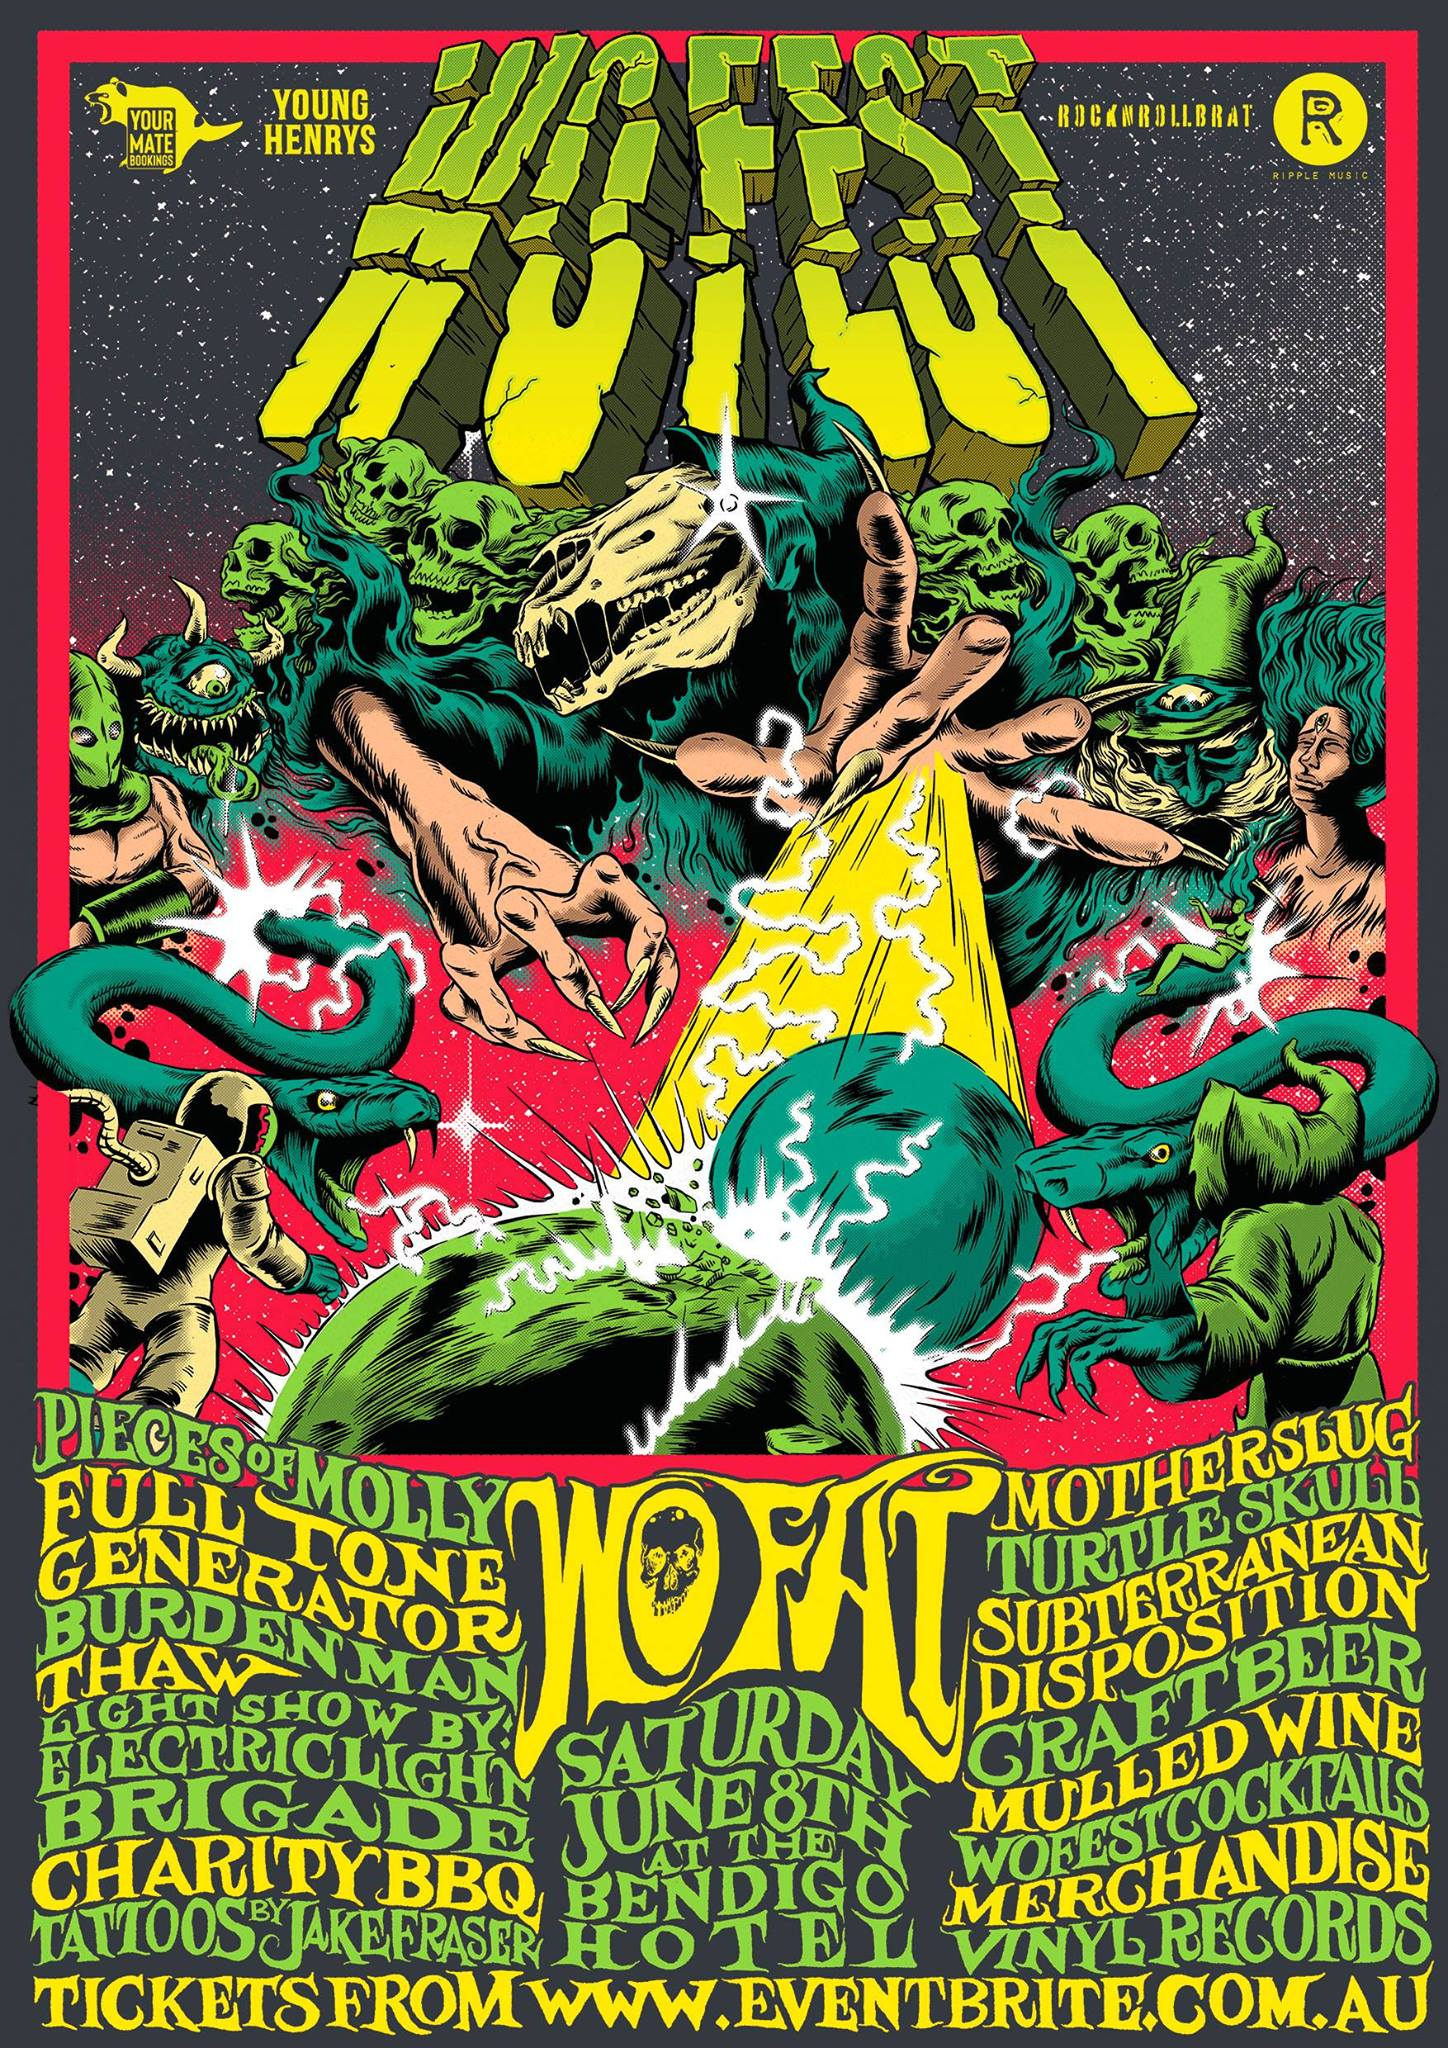 wo fest 2019 poster